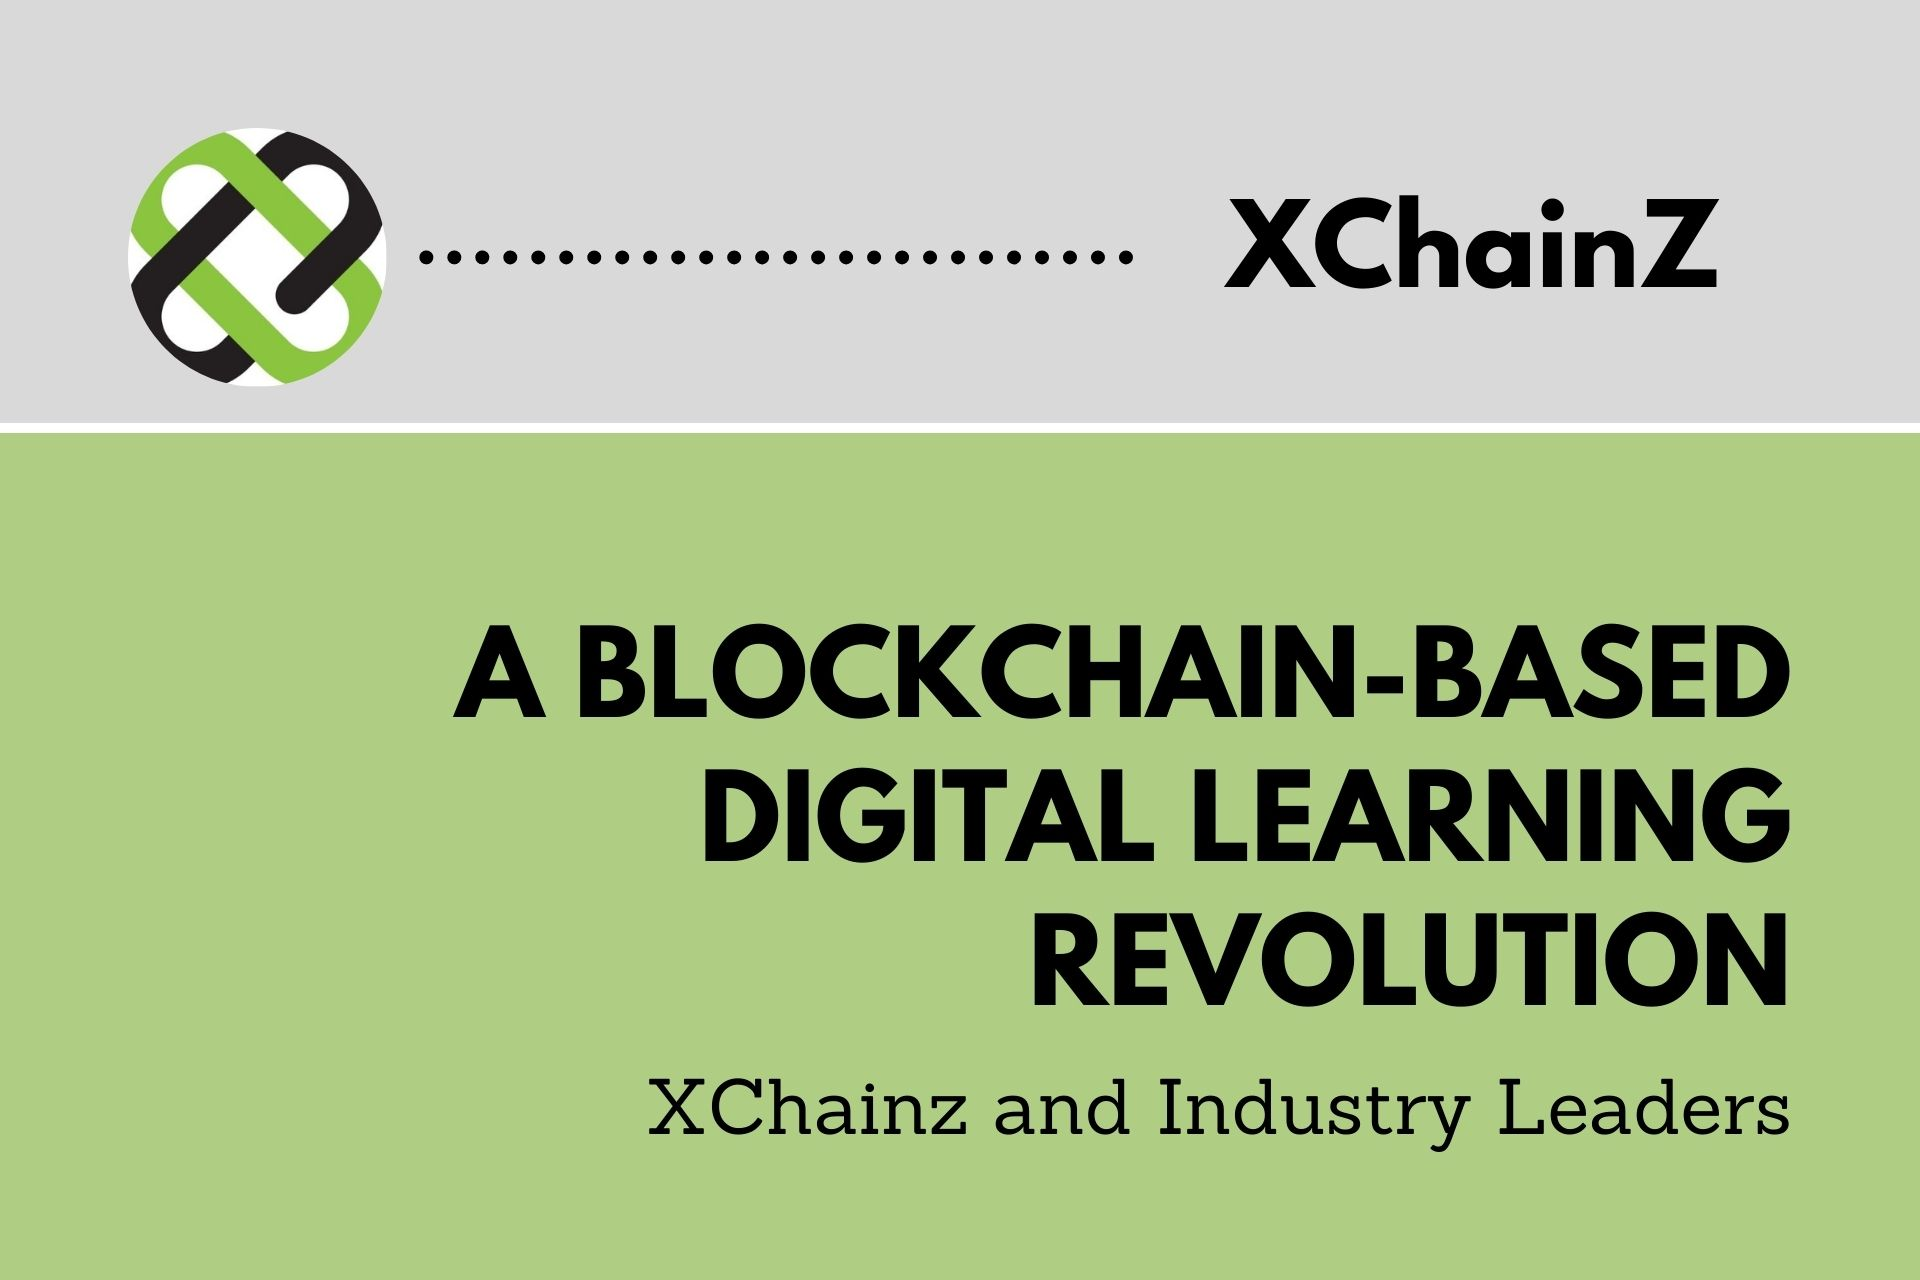 blockchain-based educational